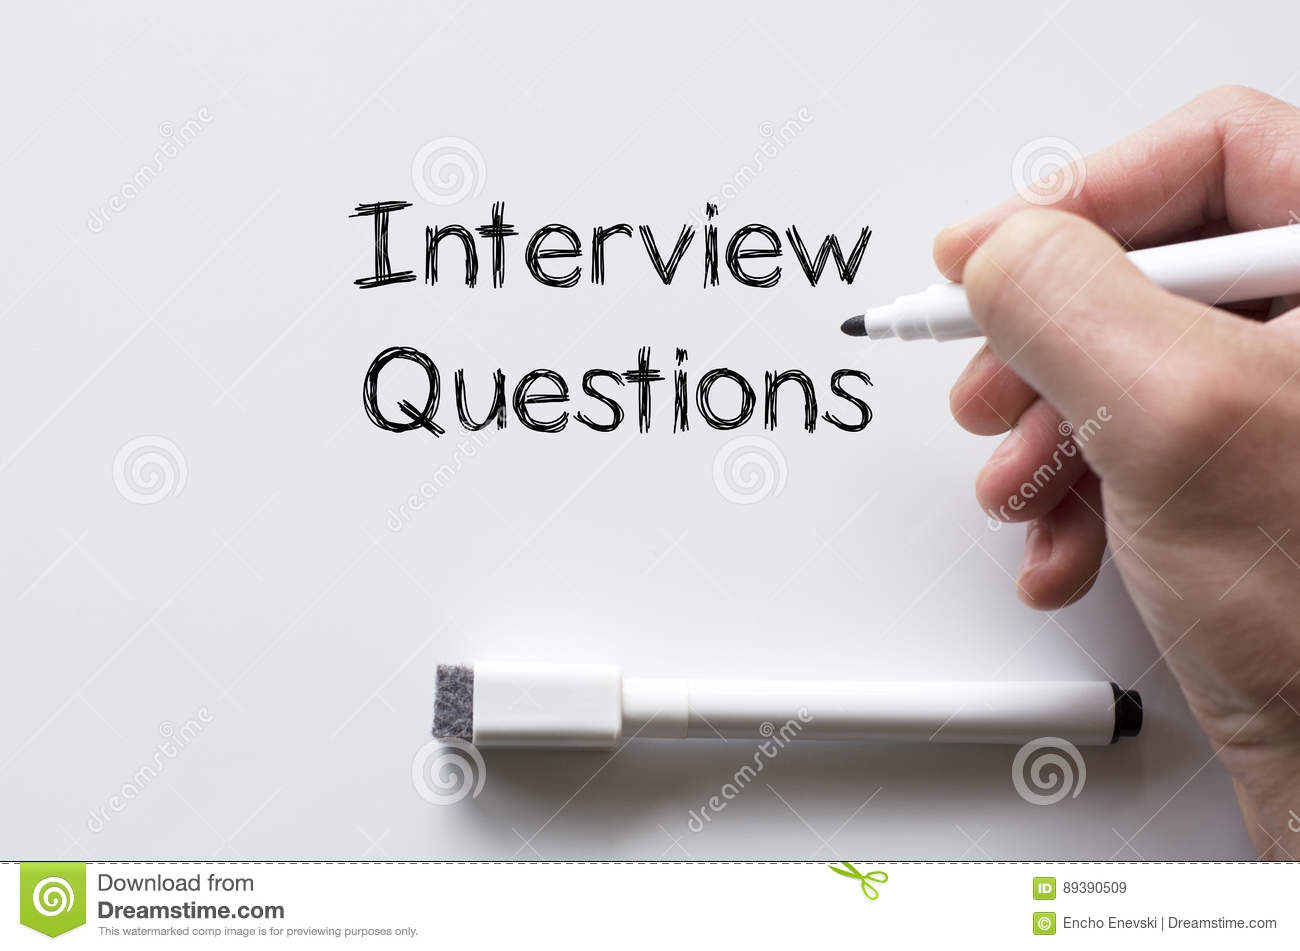 Interview Questions Written On Whiteboard Stock Image